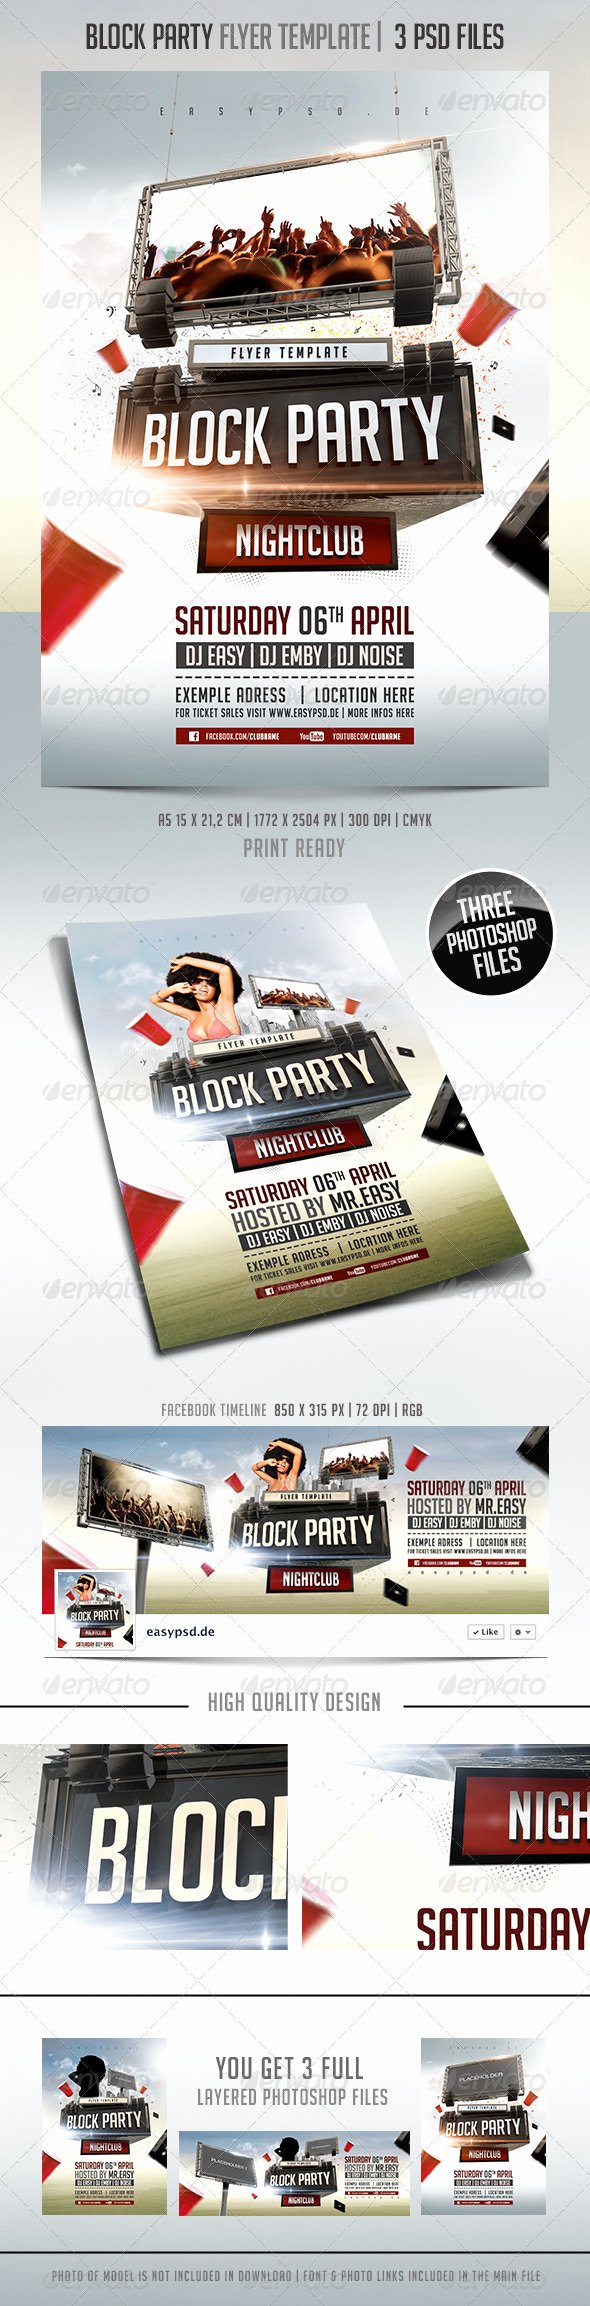 Free Printable Th July Block Party Flyers Chreagle